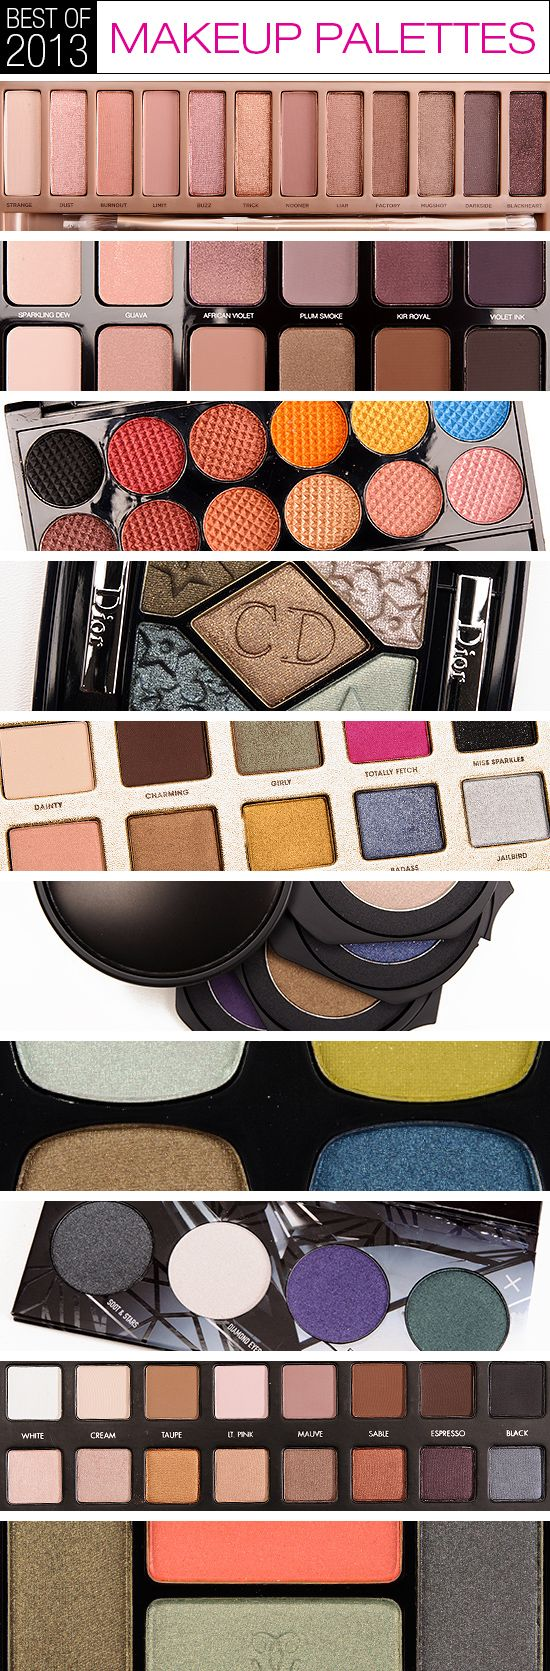 Top 10 of 2013: Best Makeup Palettes